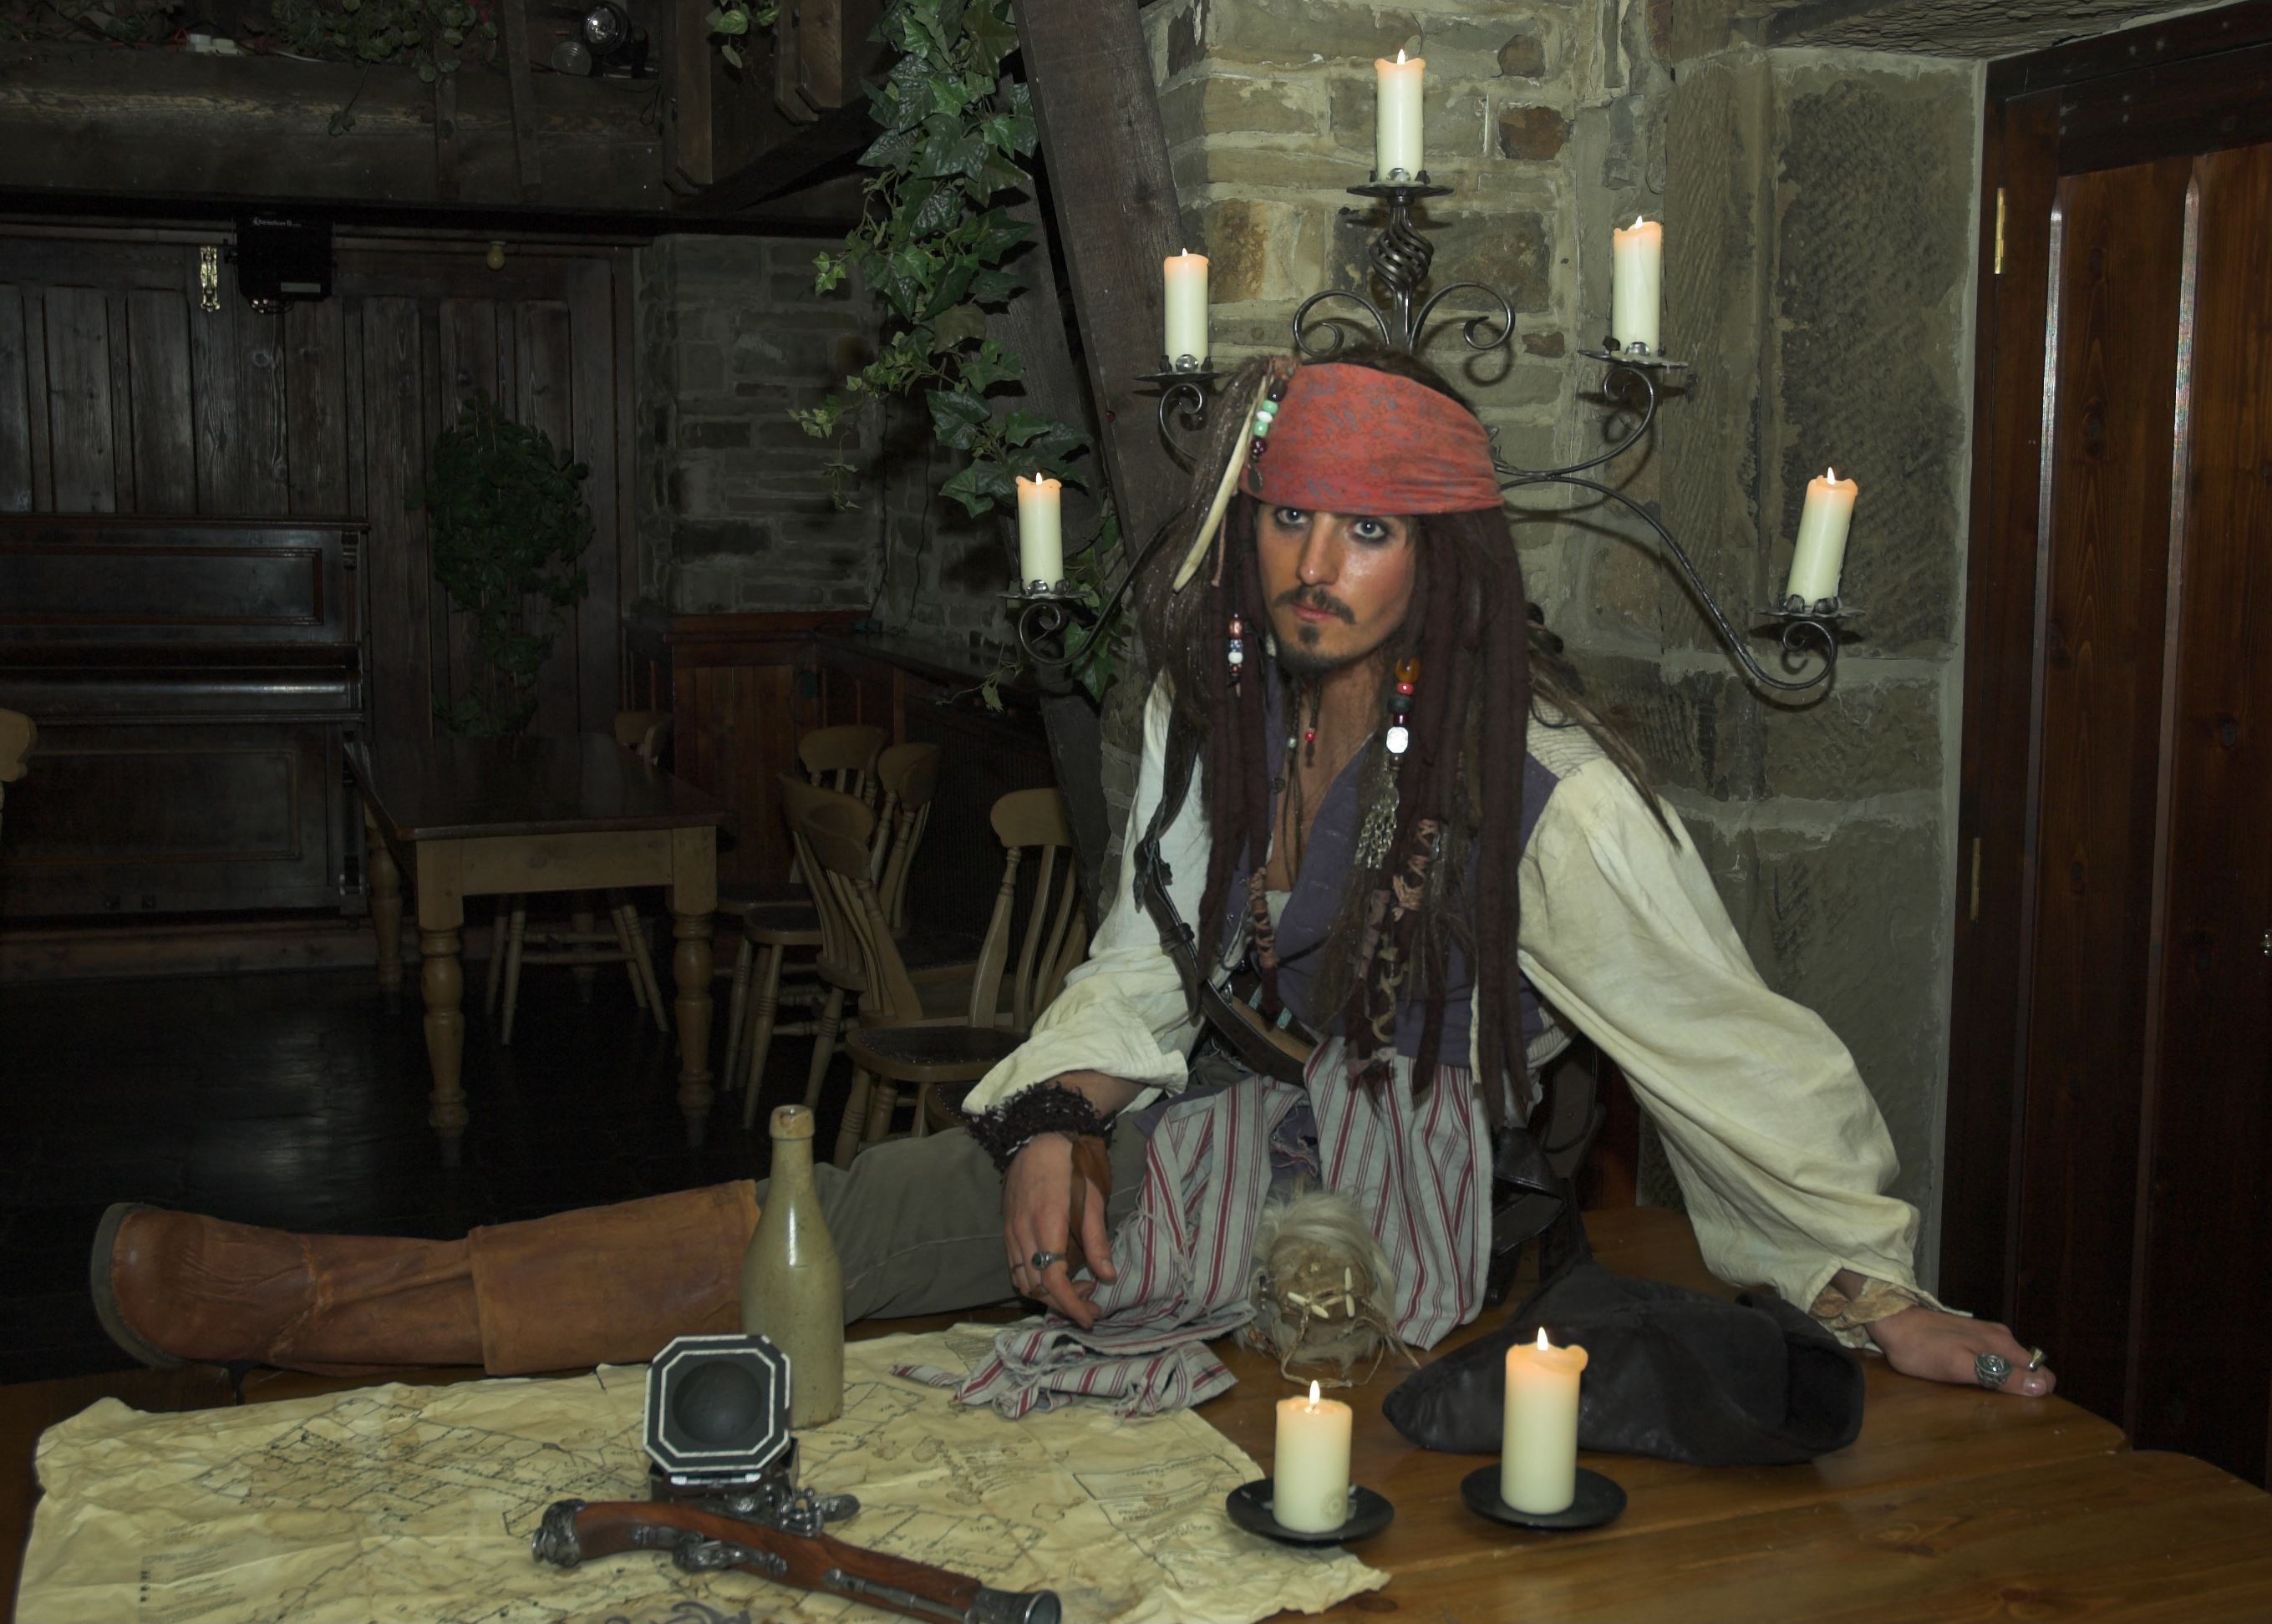 Johnny Depp, Captain Jack Sparrow